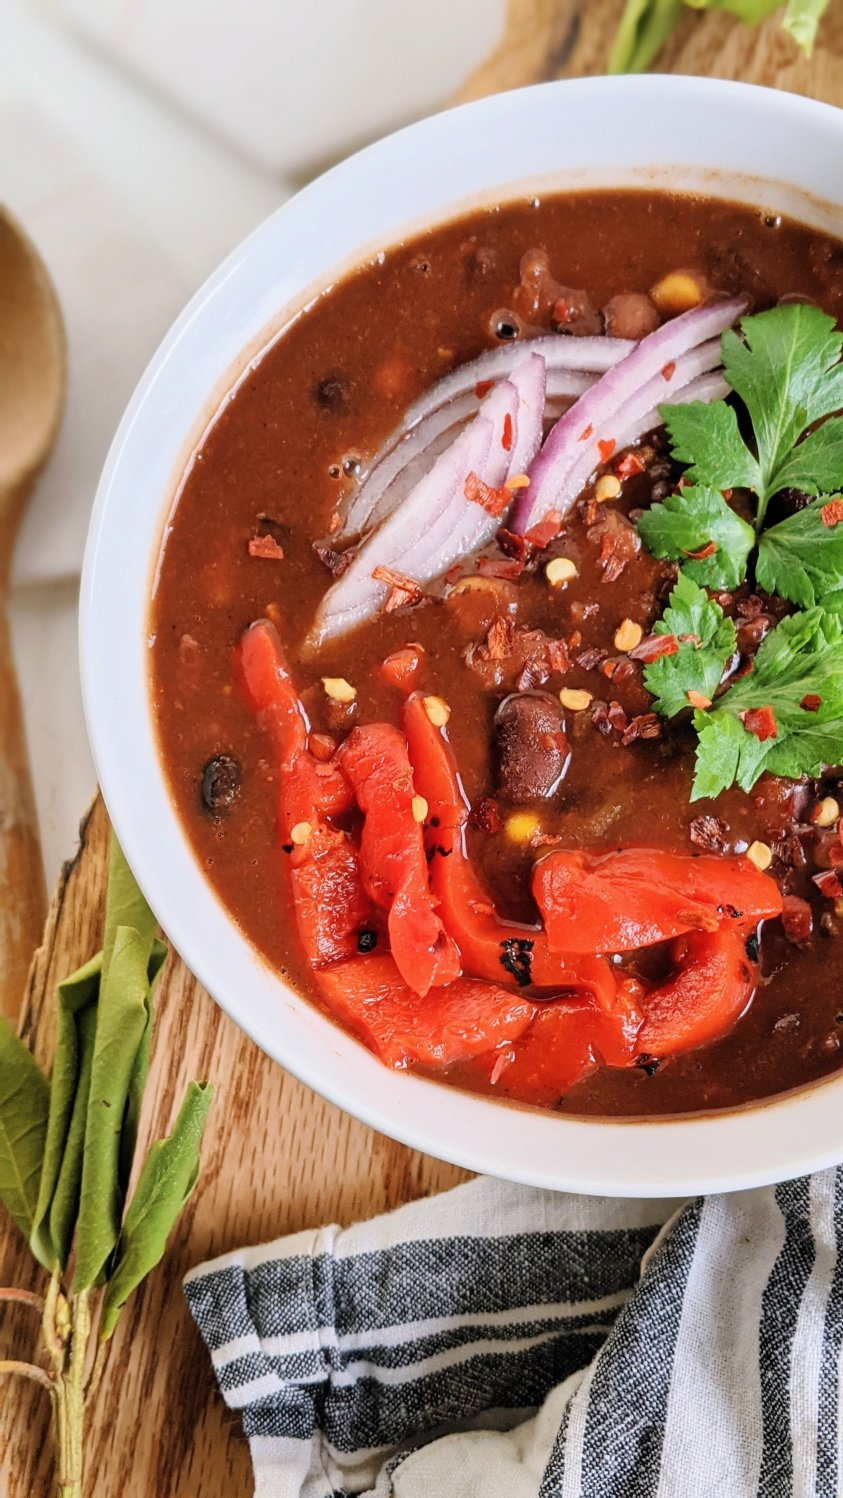 intant pot three bean chili recipe slow cooker crock pot vegan vegetarian meatless chili gluten free healthy high protein veagn chili recipe stove top canned beans